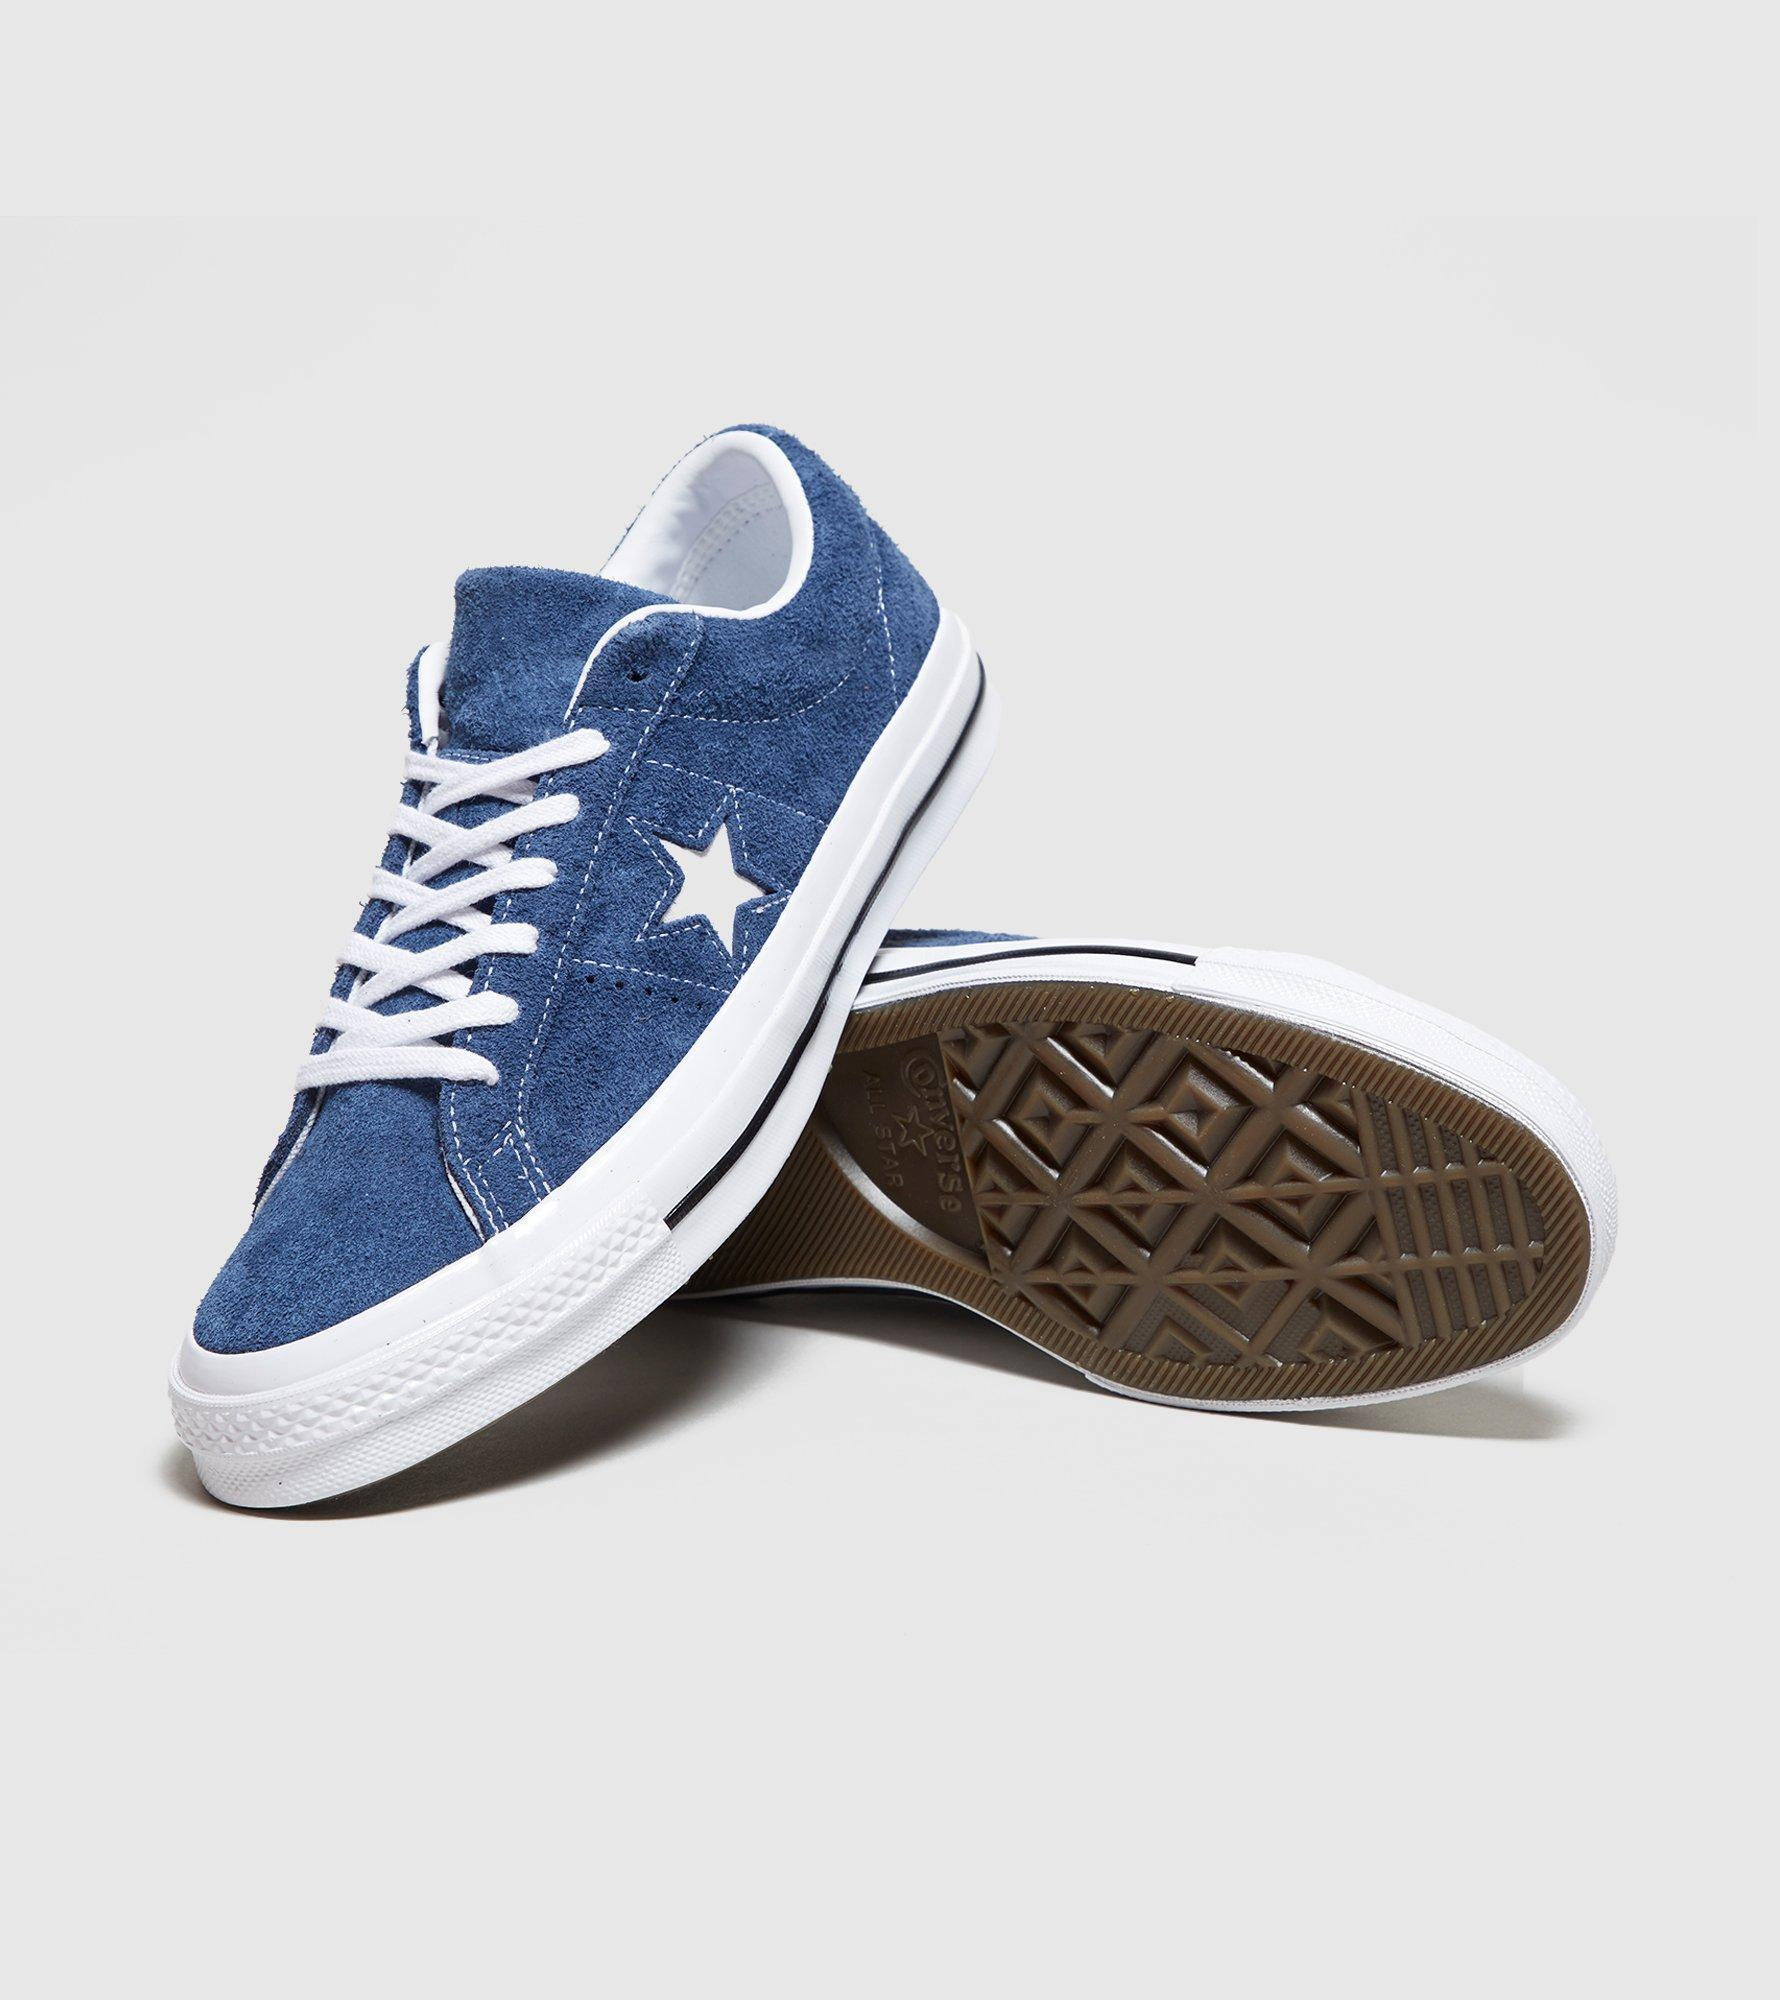 46f2a712673 Converse One Star Suede in Blue for Men - Lyst